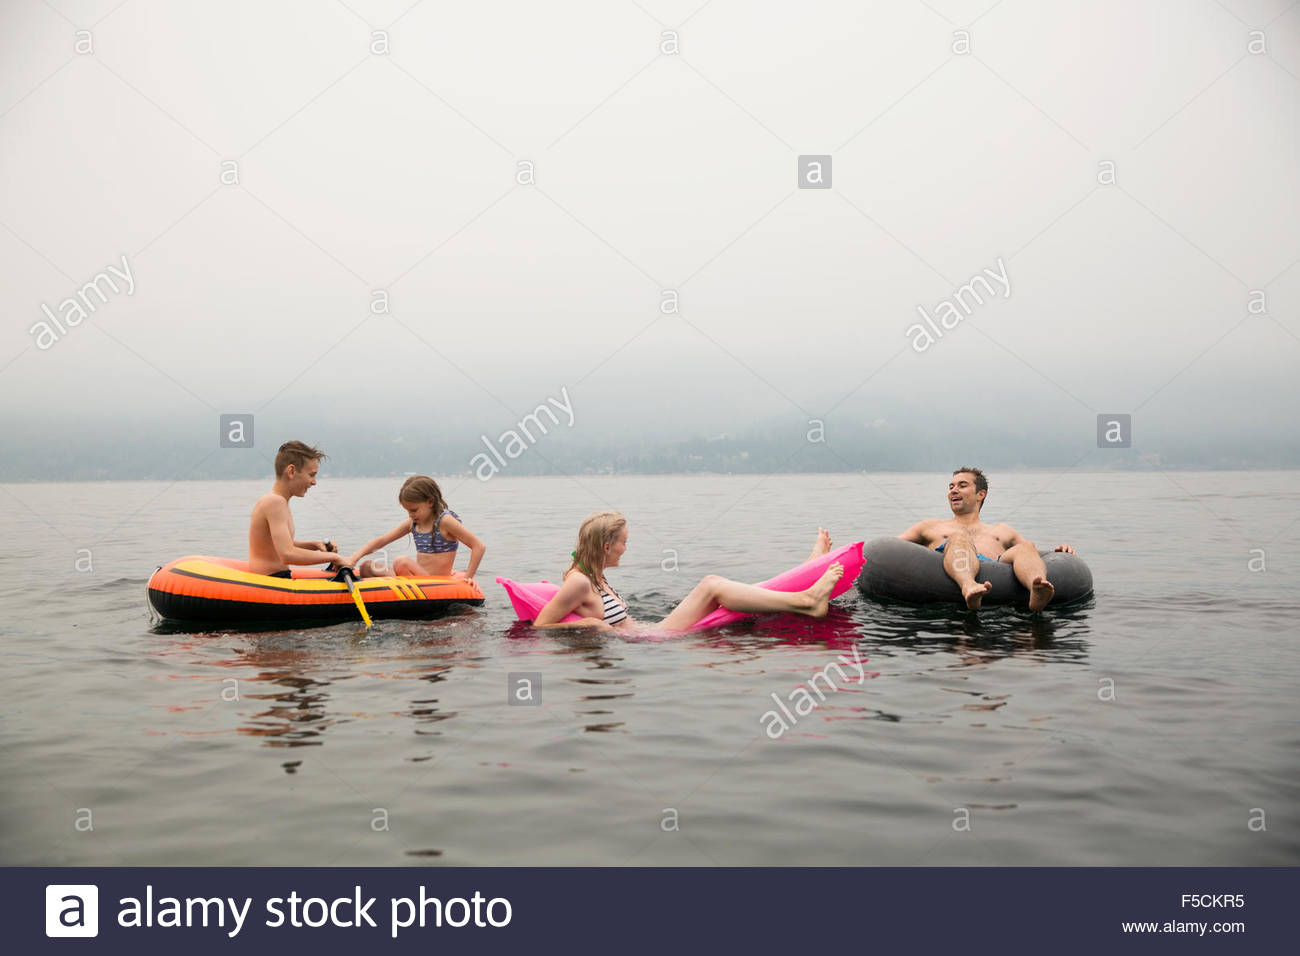 Family relaxing in pool rafts in lake - Stock Image